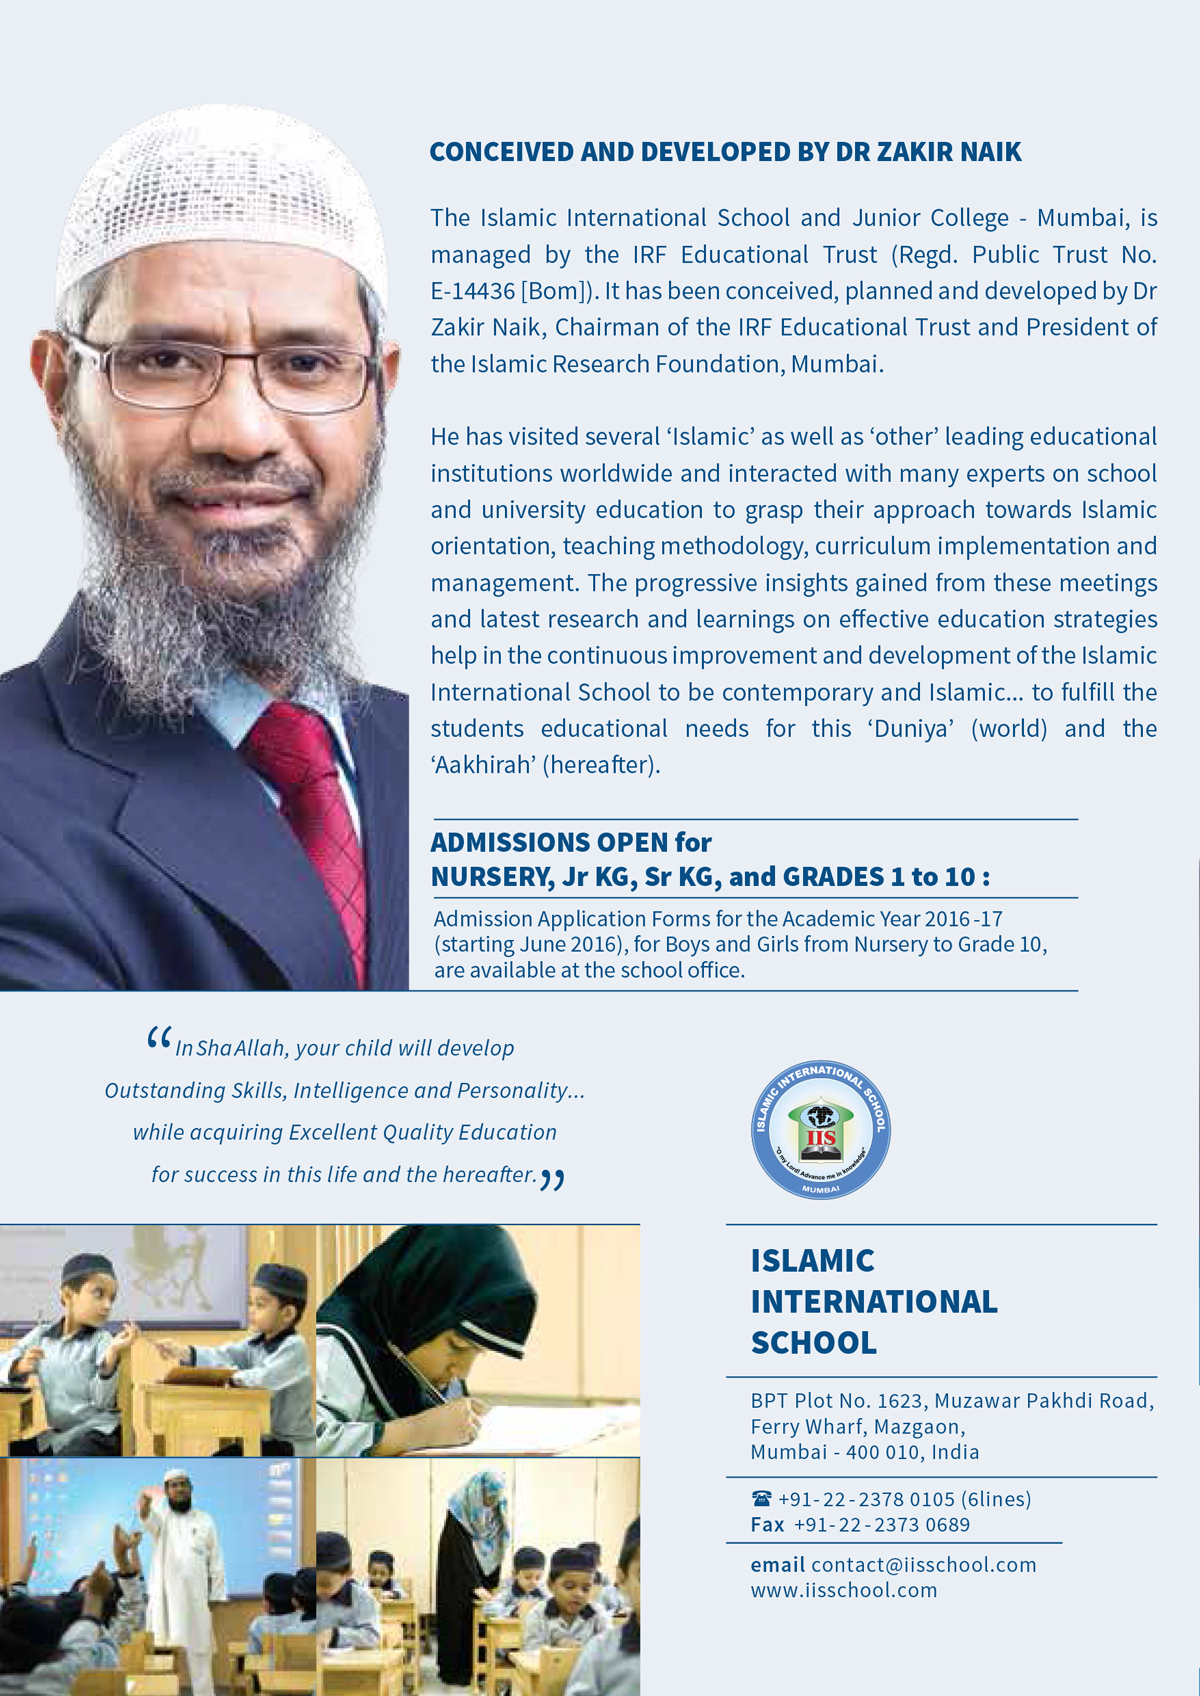 Brochure of Islamic International School (IIS) & Junior College